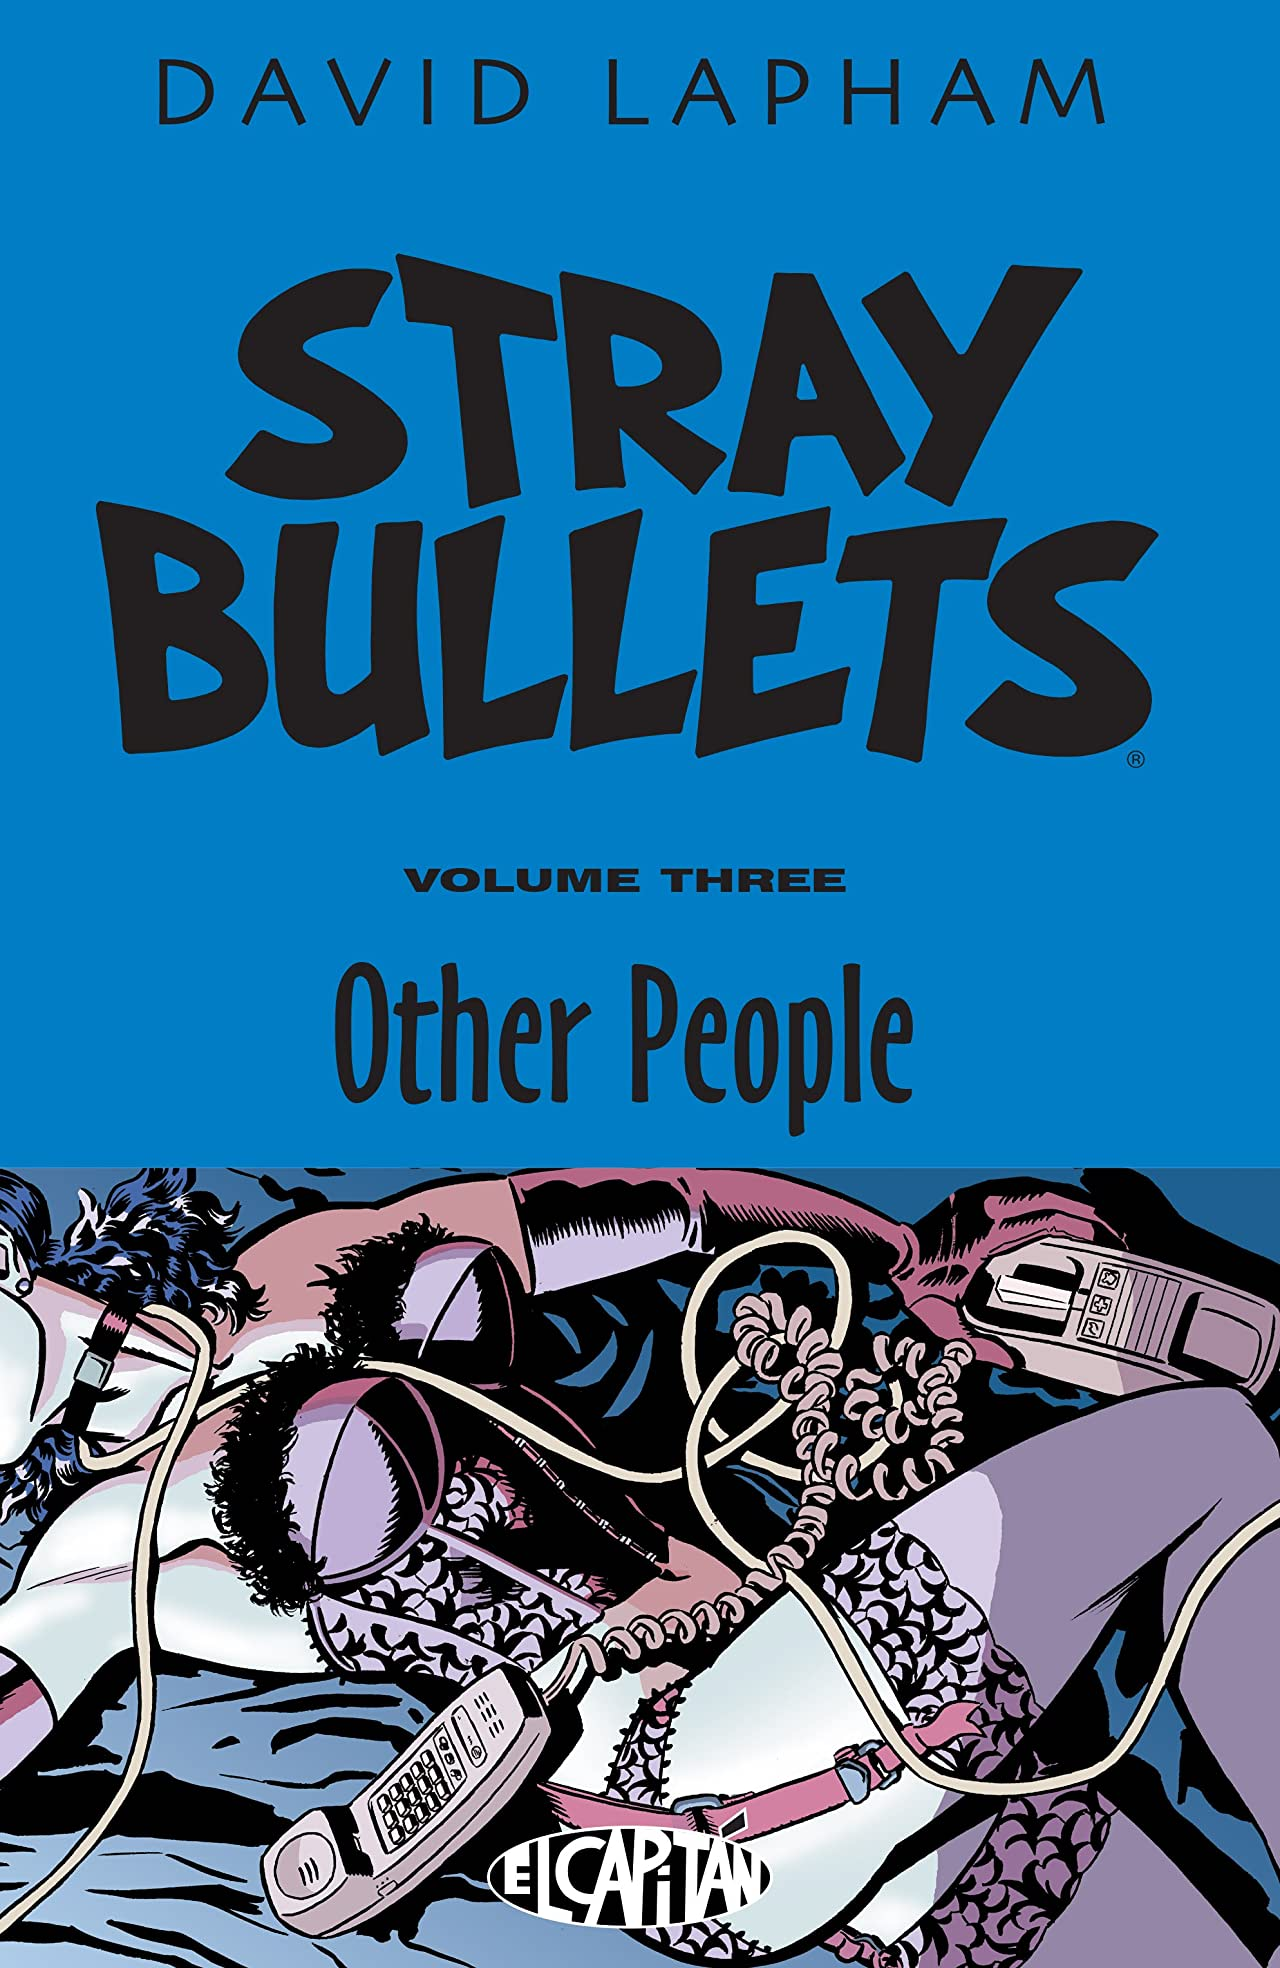 Stray Bullets Vol. 3: Other People